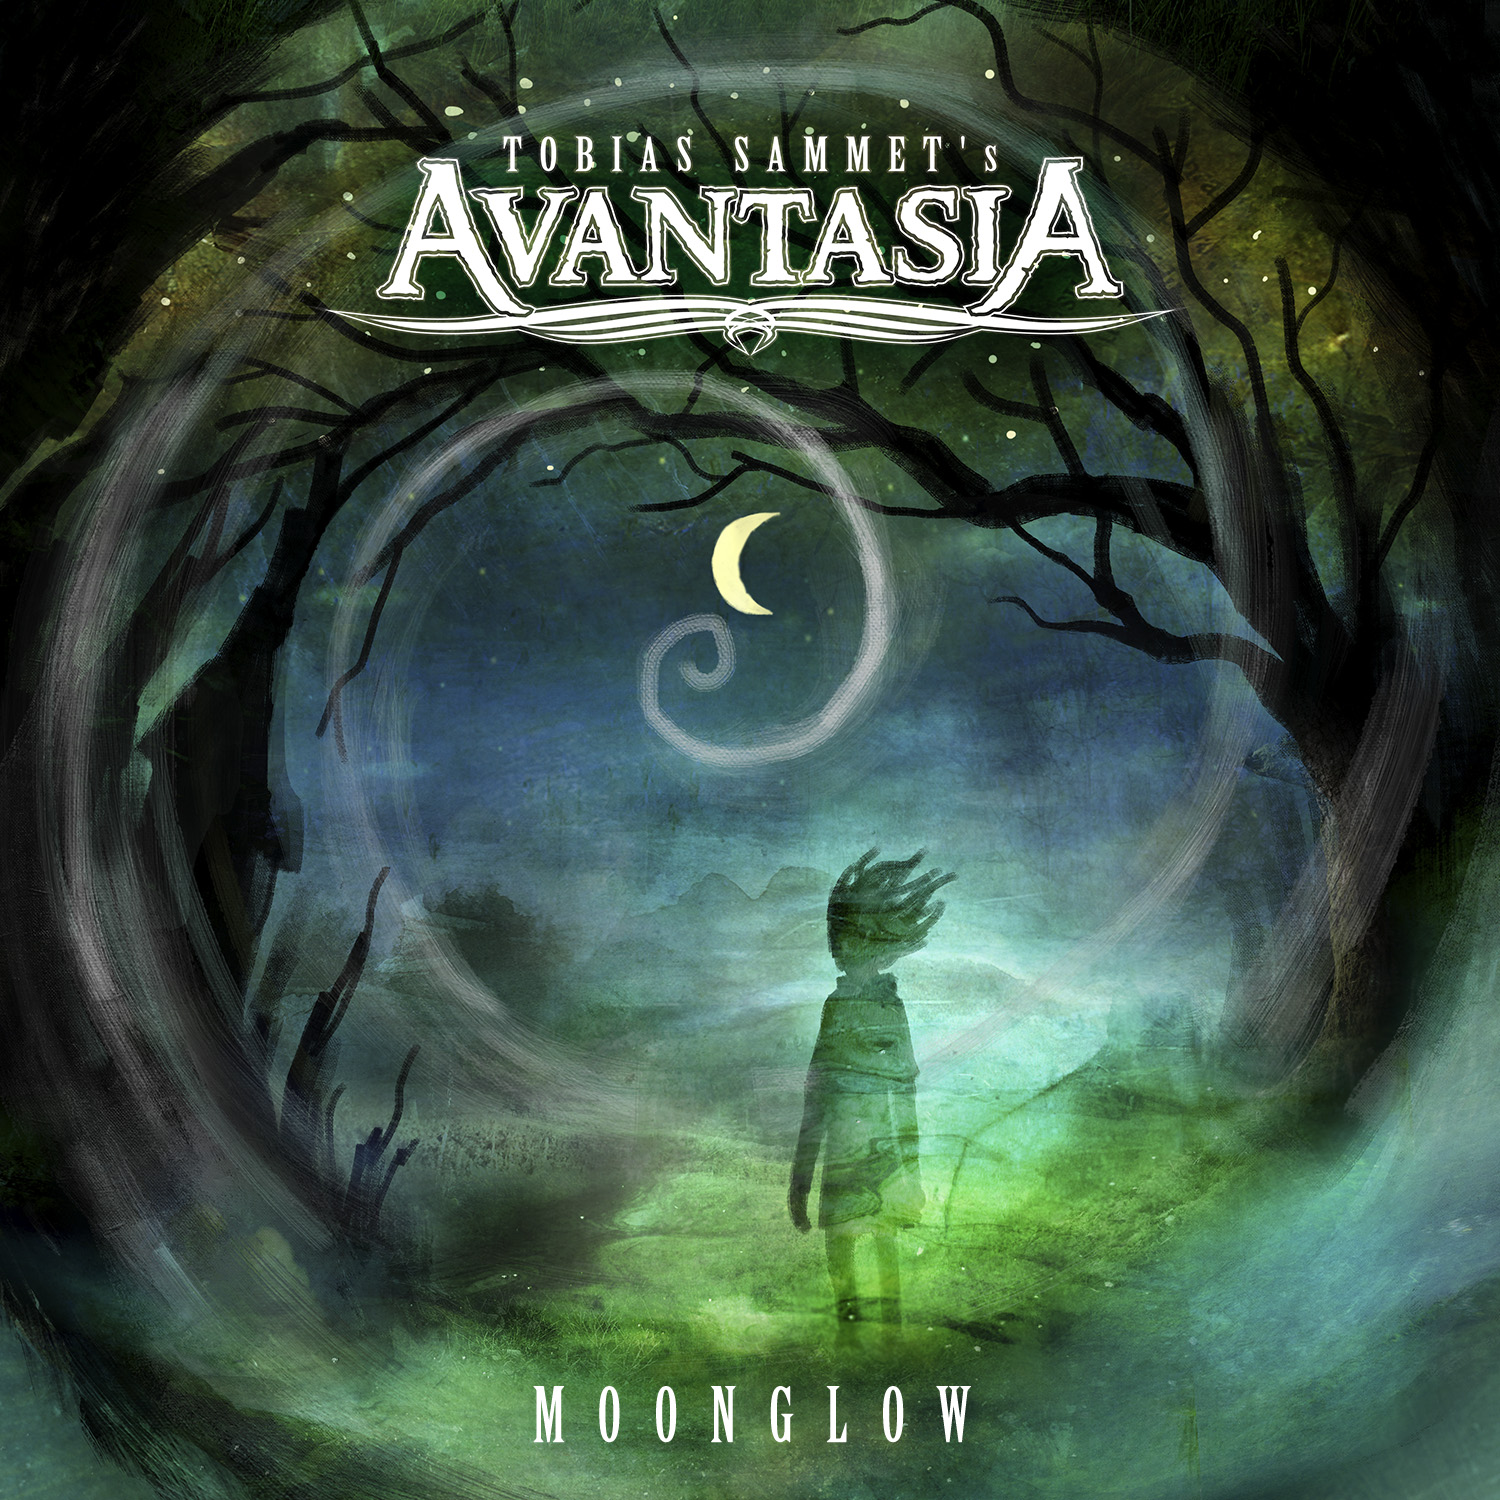 avantasia moonglow single